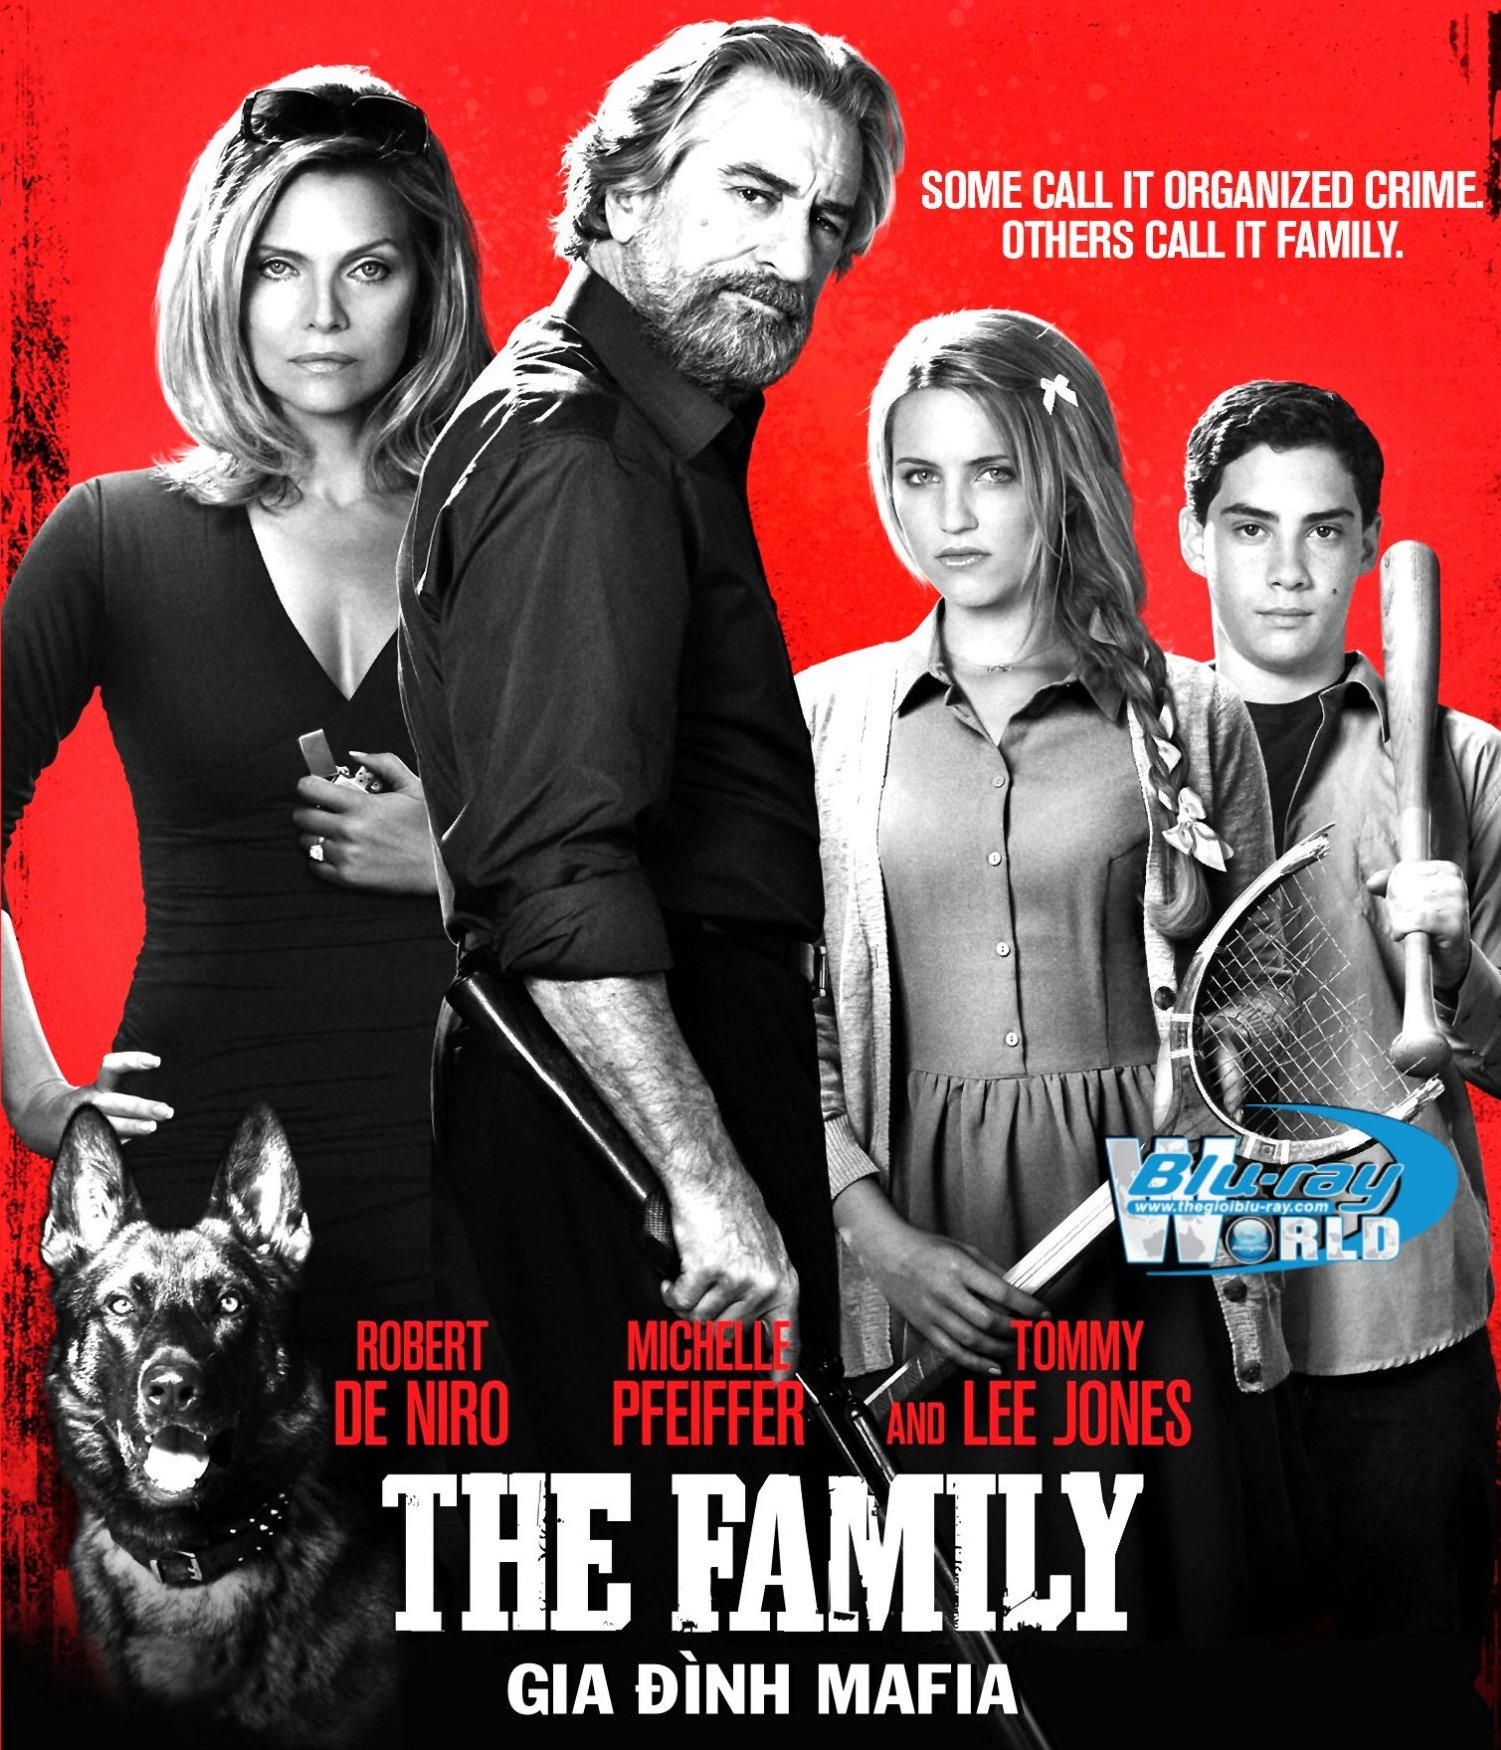 B1556. THE FAMILY - GIA ĐÌNH MAFIA 2D 25G (DTS-HD MA 5.1)